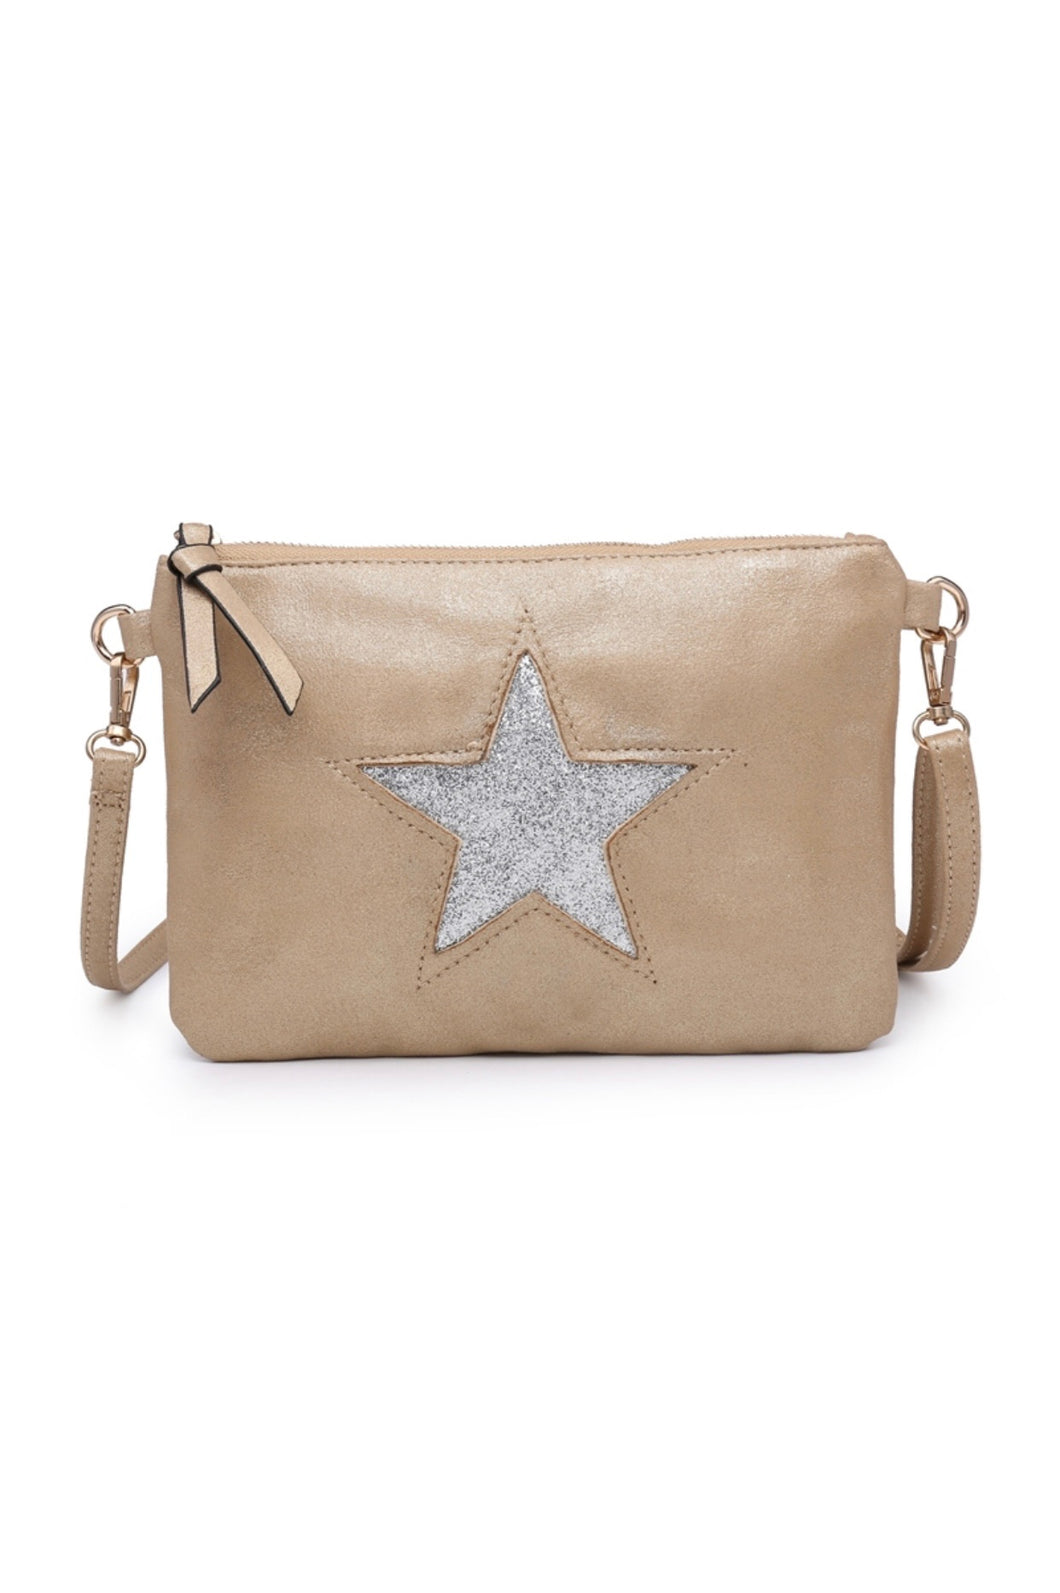 Gold star clutch with shoulder strap